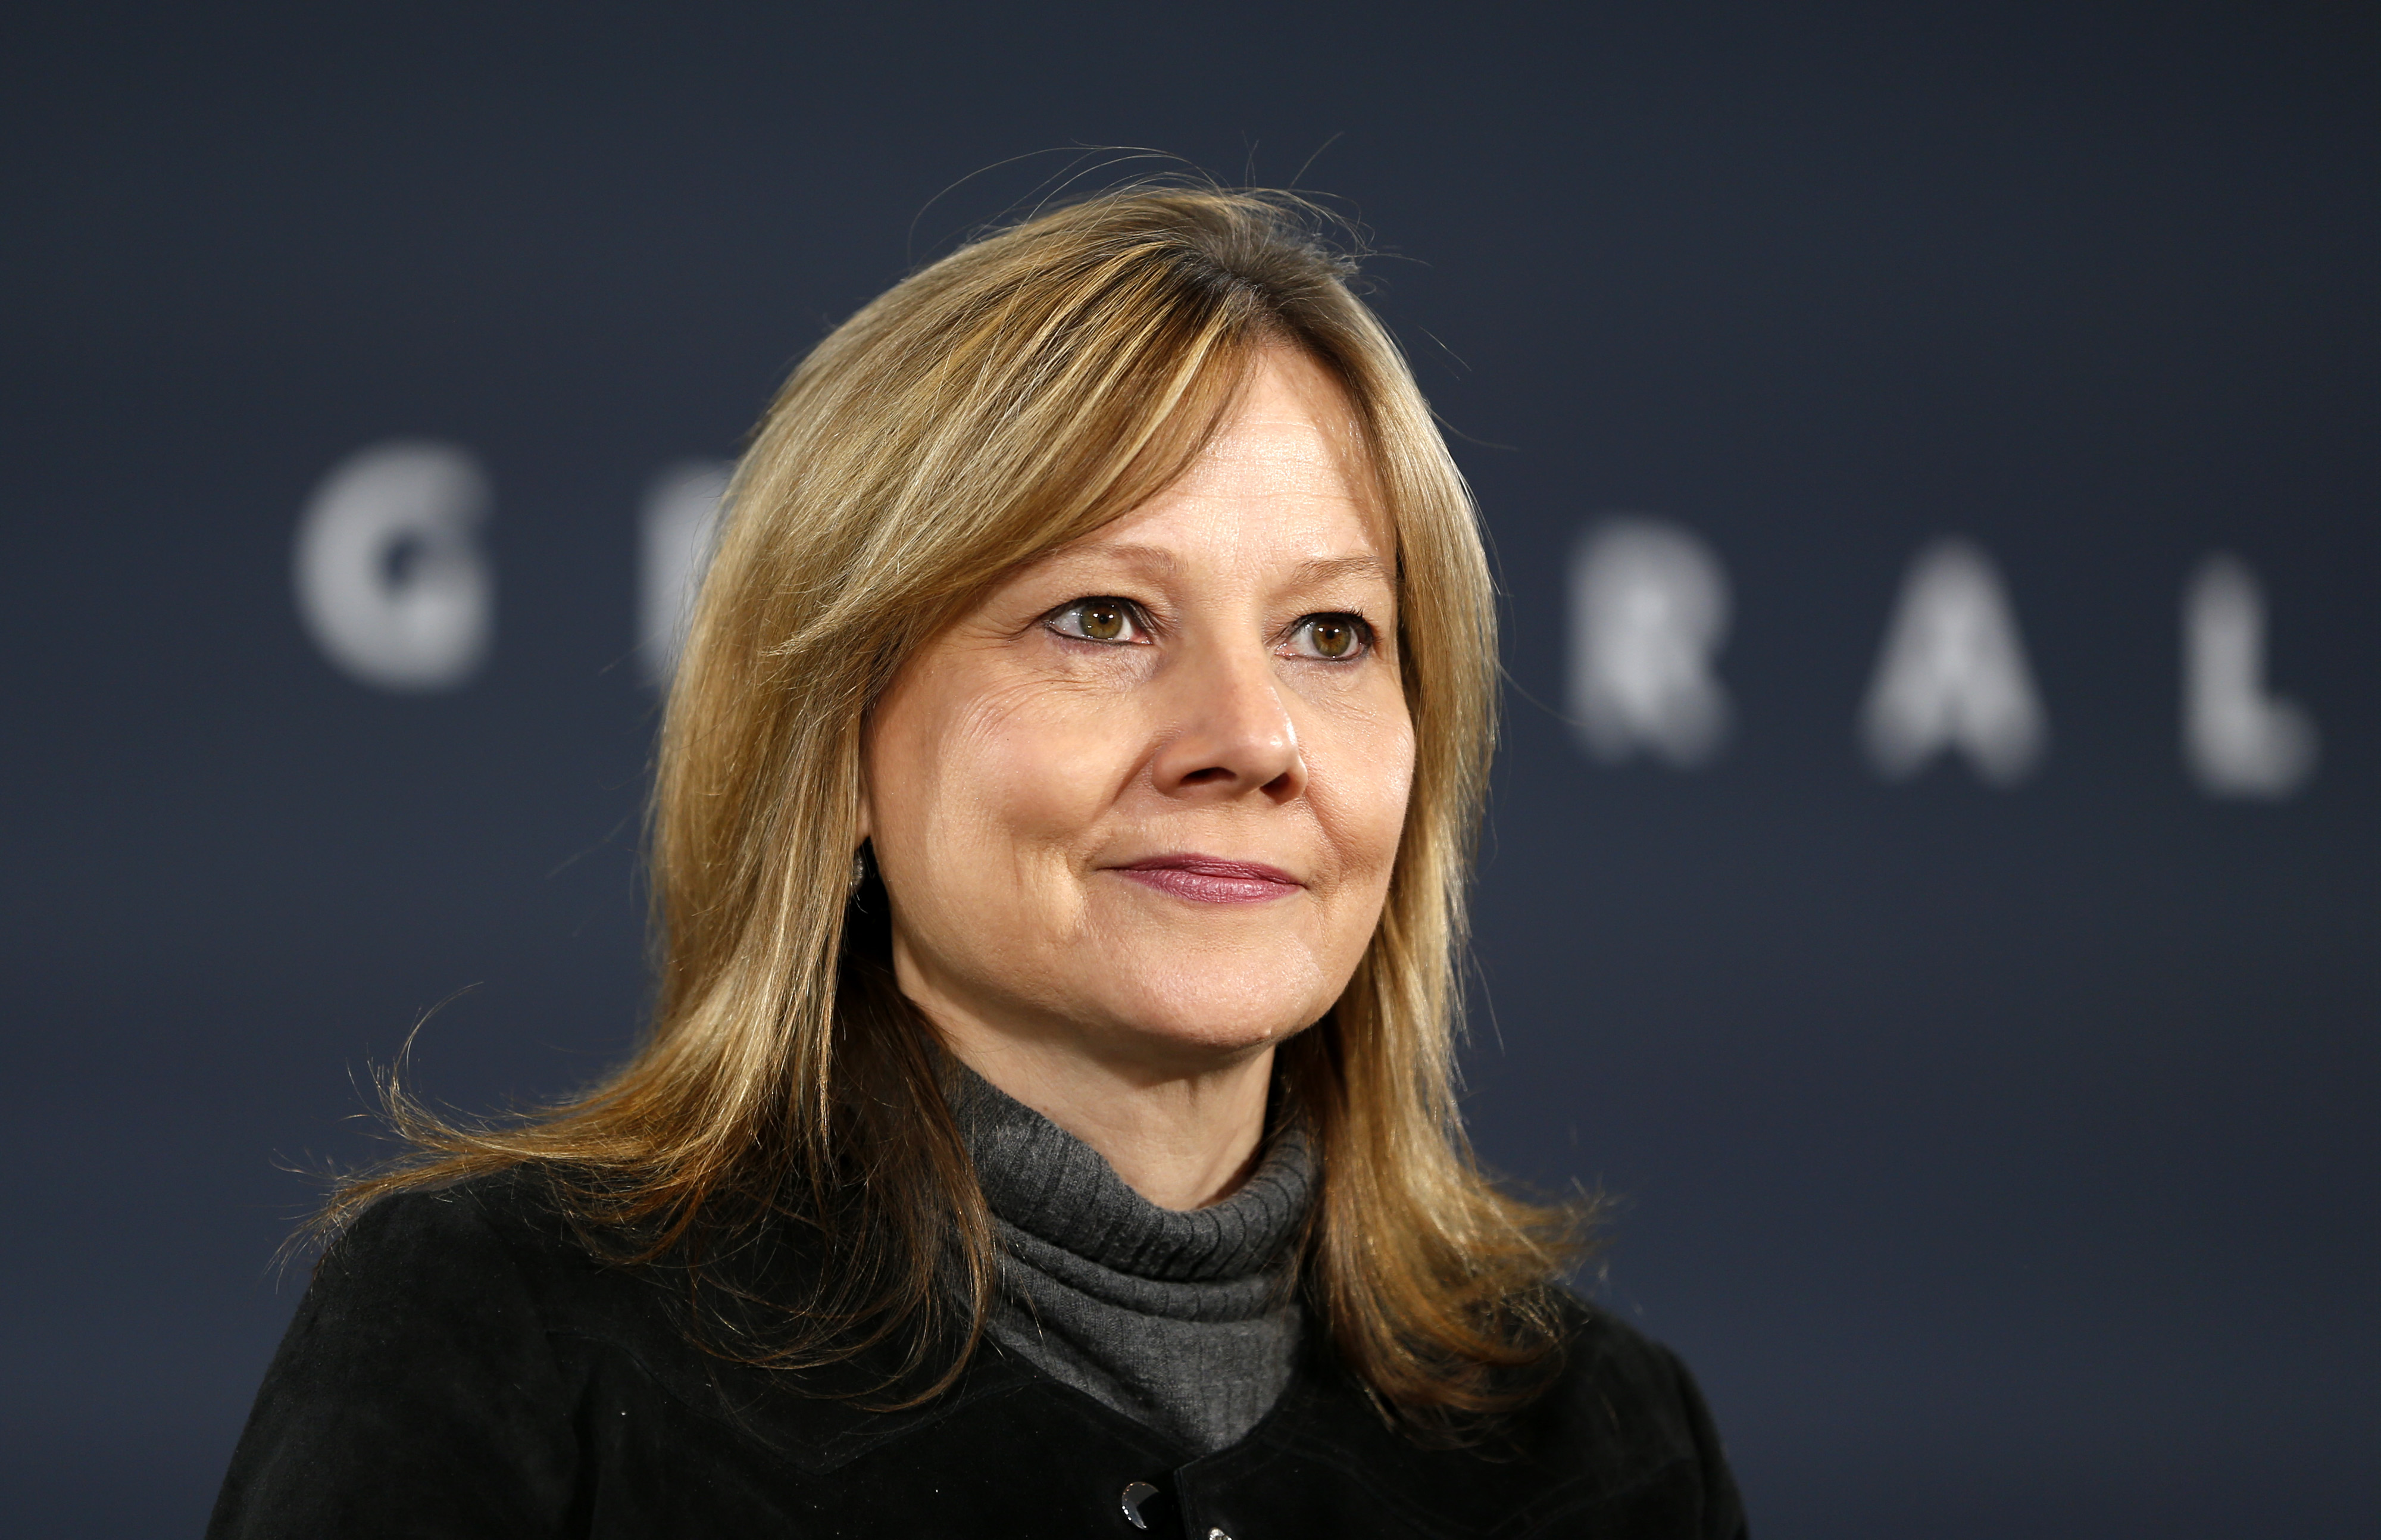 General Motors Co. Chief Executive Officer Mary Barra News Conference